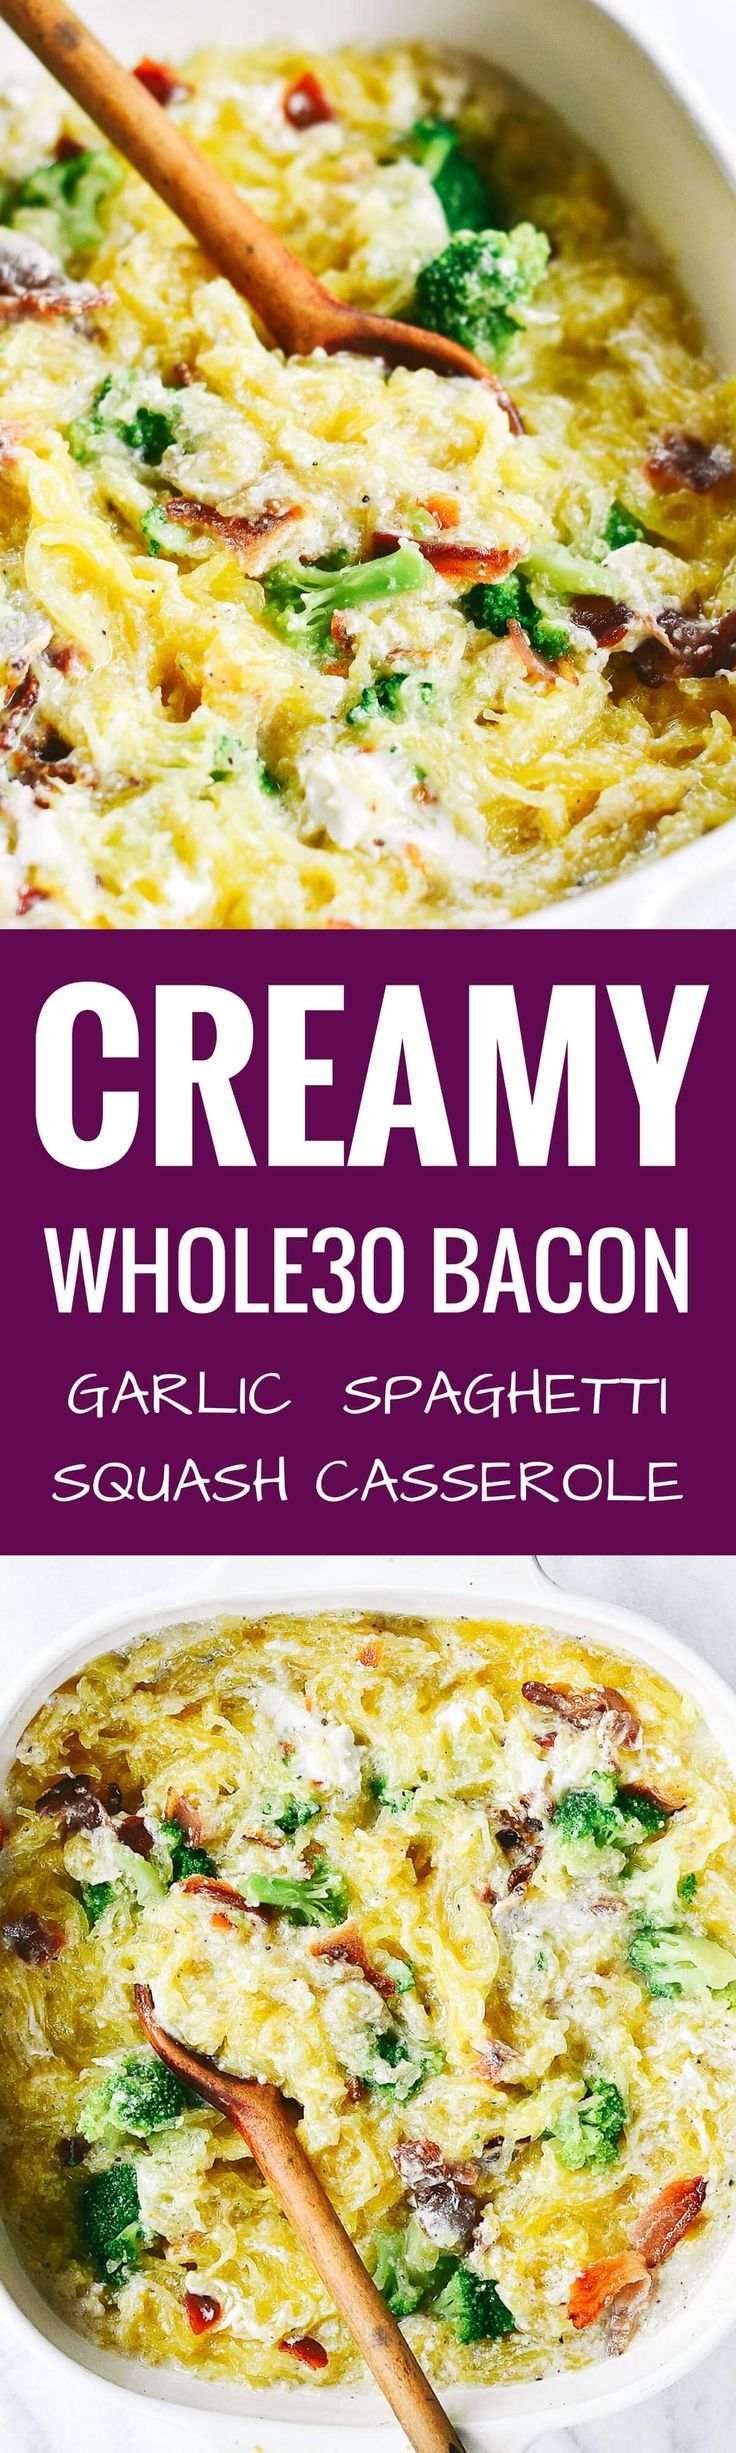 Easy whole30 creamy bacon garlic spaghetti squash bake. Can add cooked, diced chicken. Paleo, healthy, and easy to make! Paleo version of carbonara.